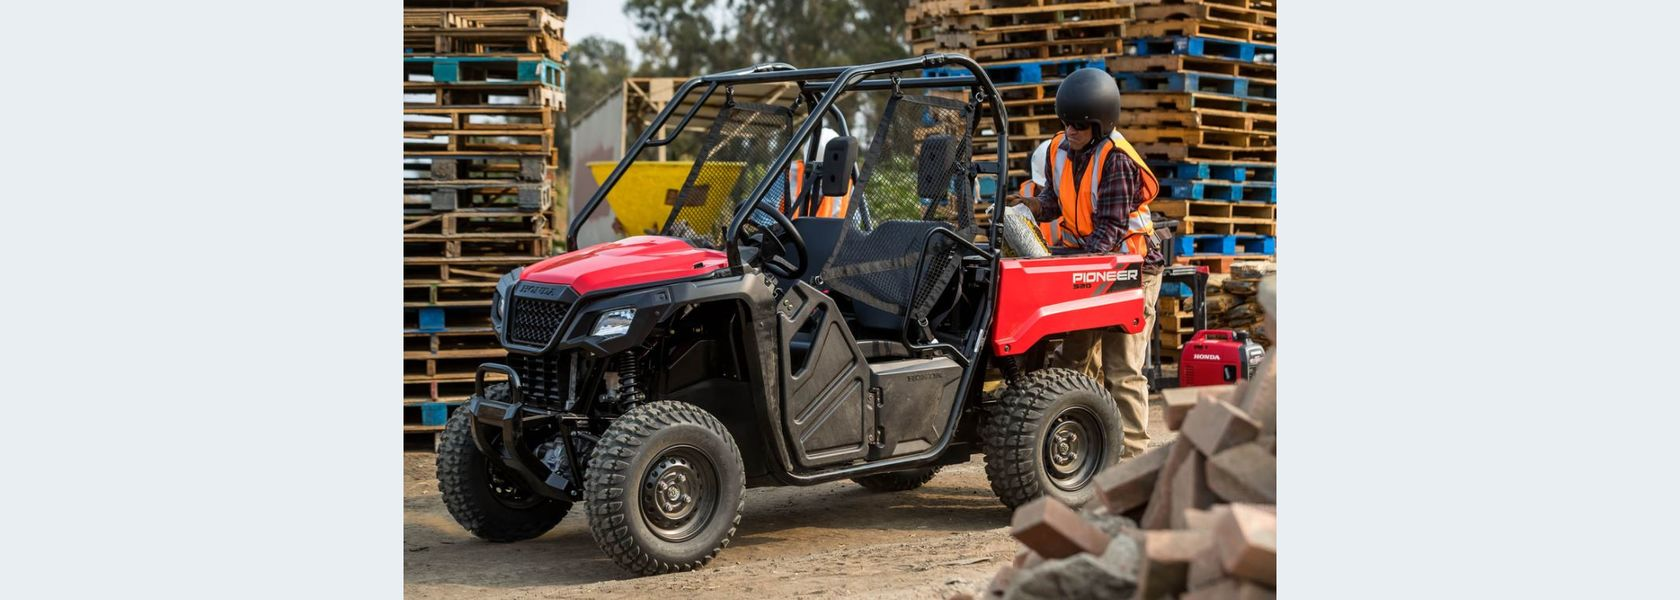 Honda confirms ATV market exit